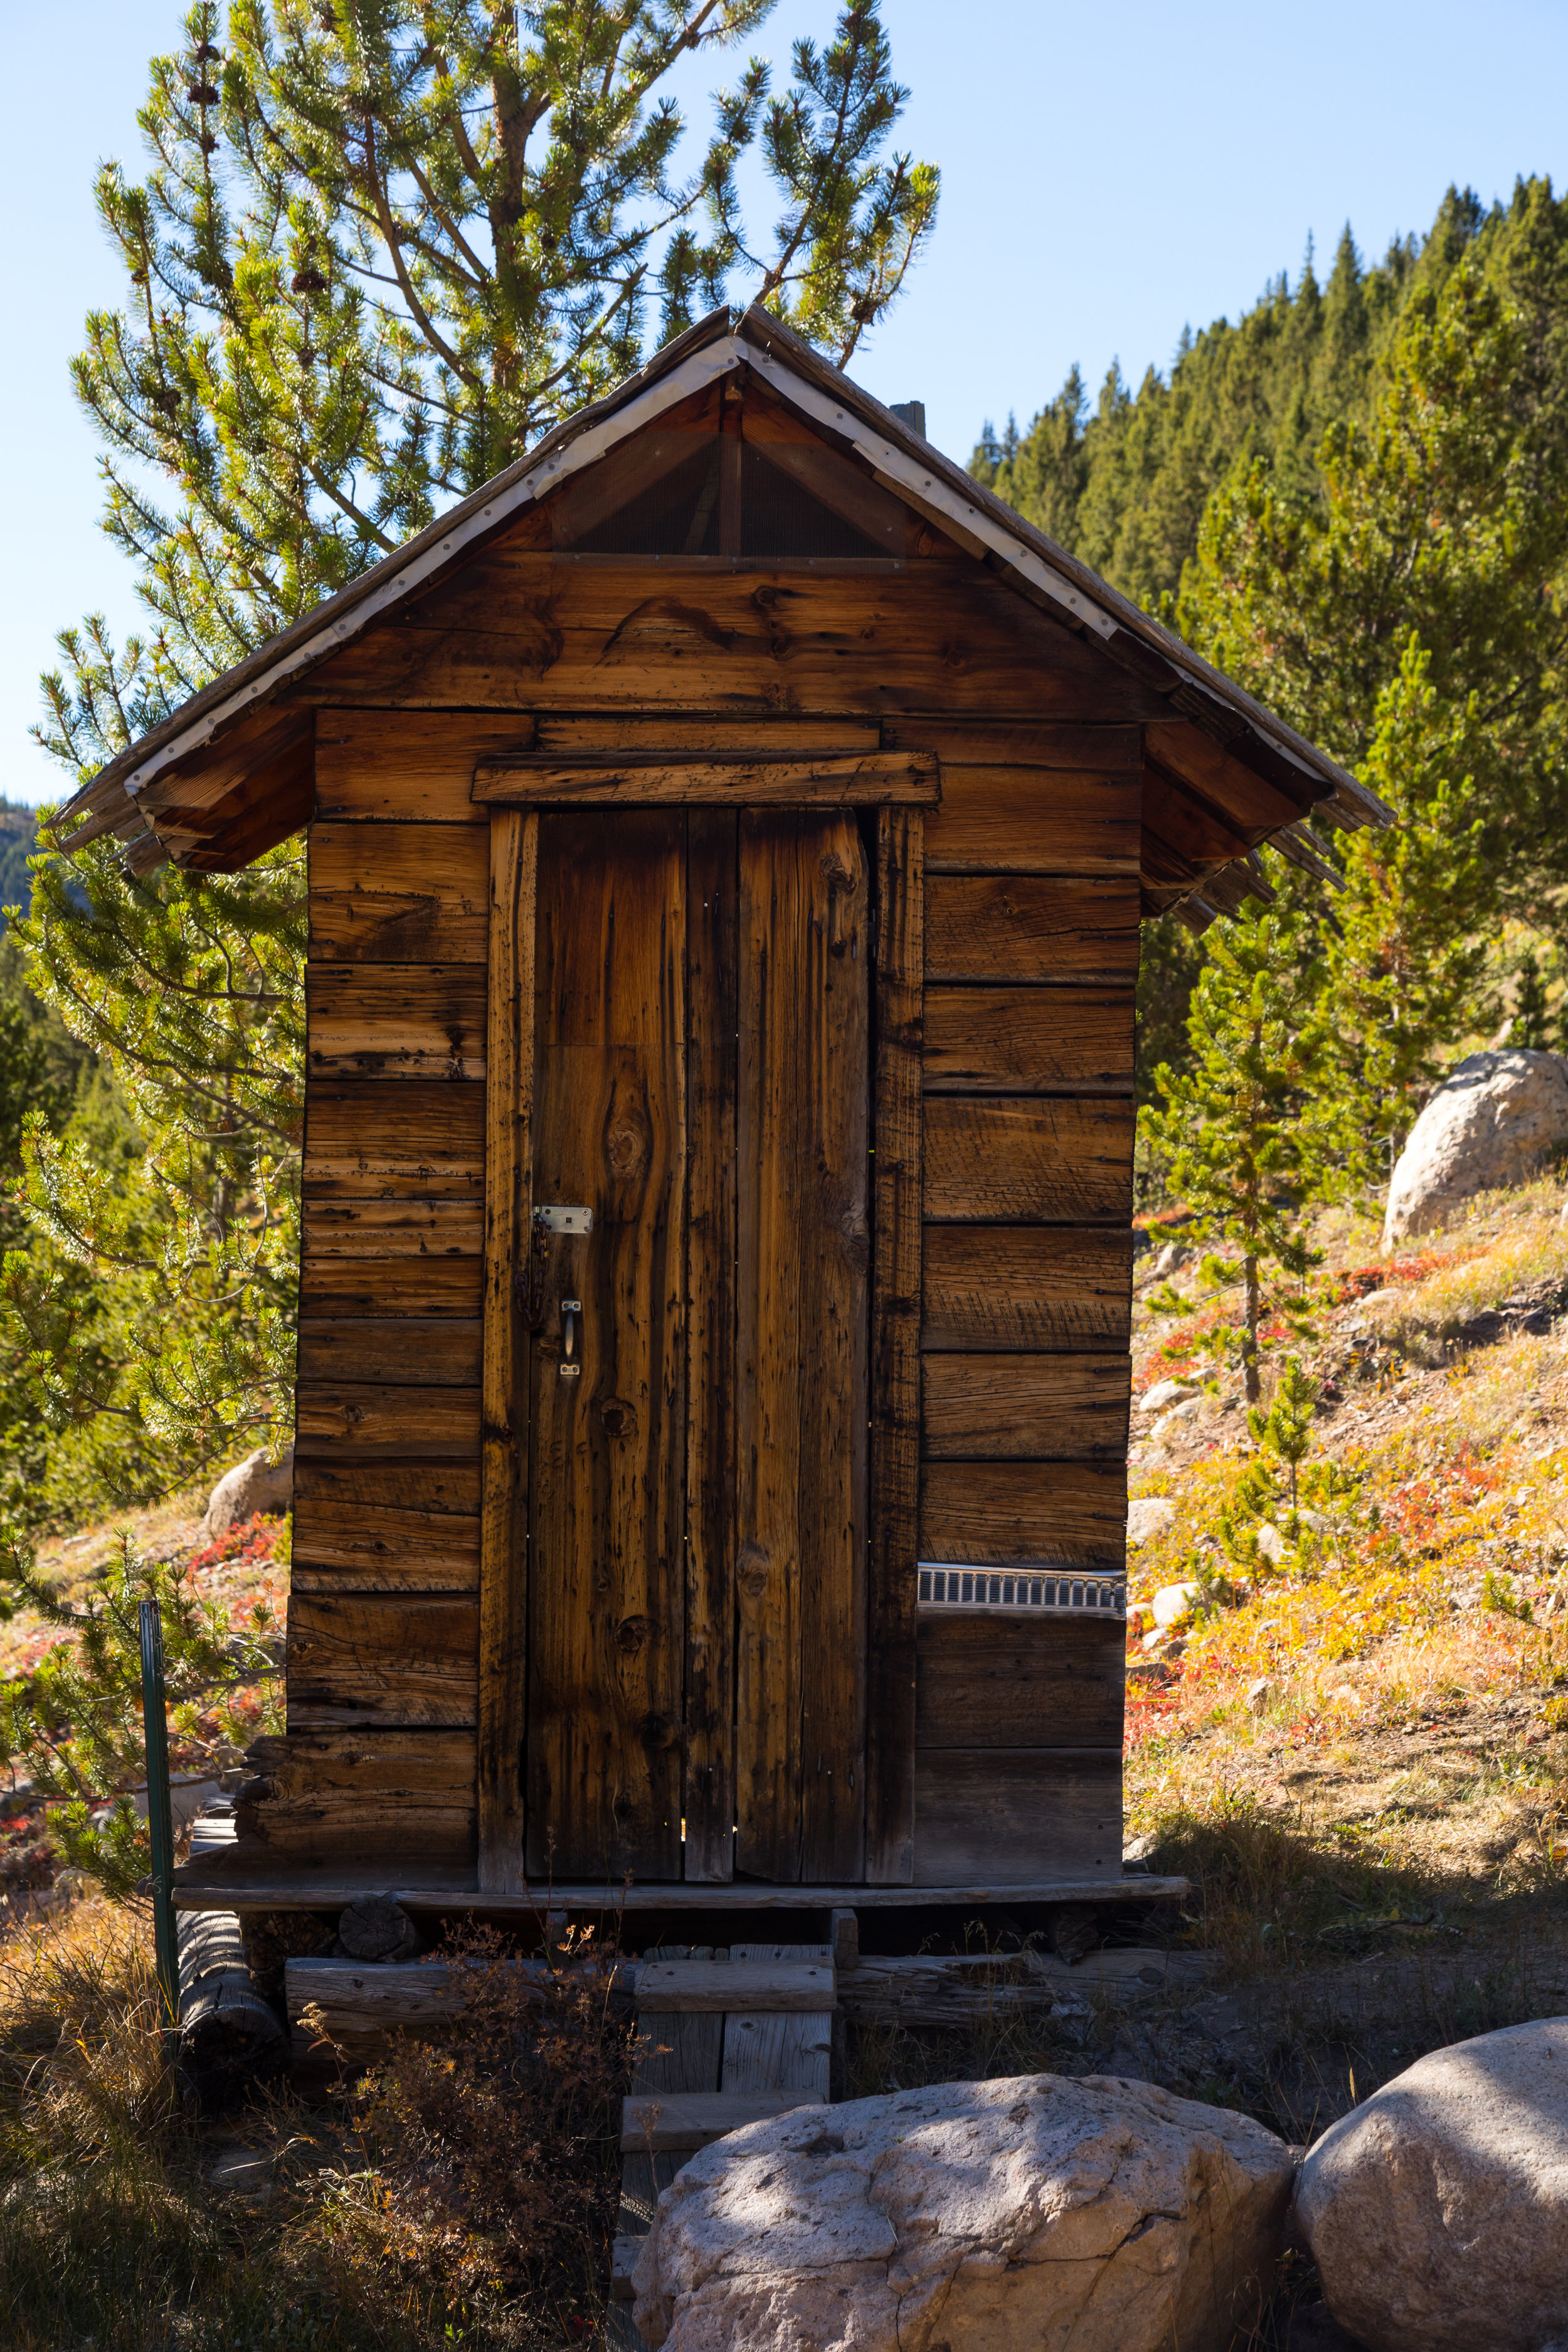 Independence Pass, Image # 1616